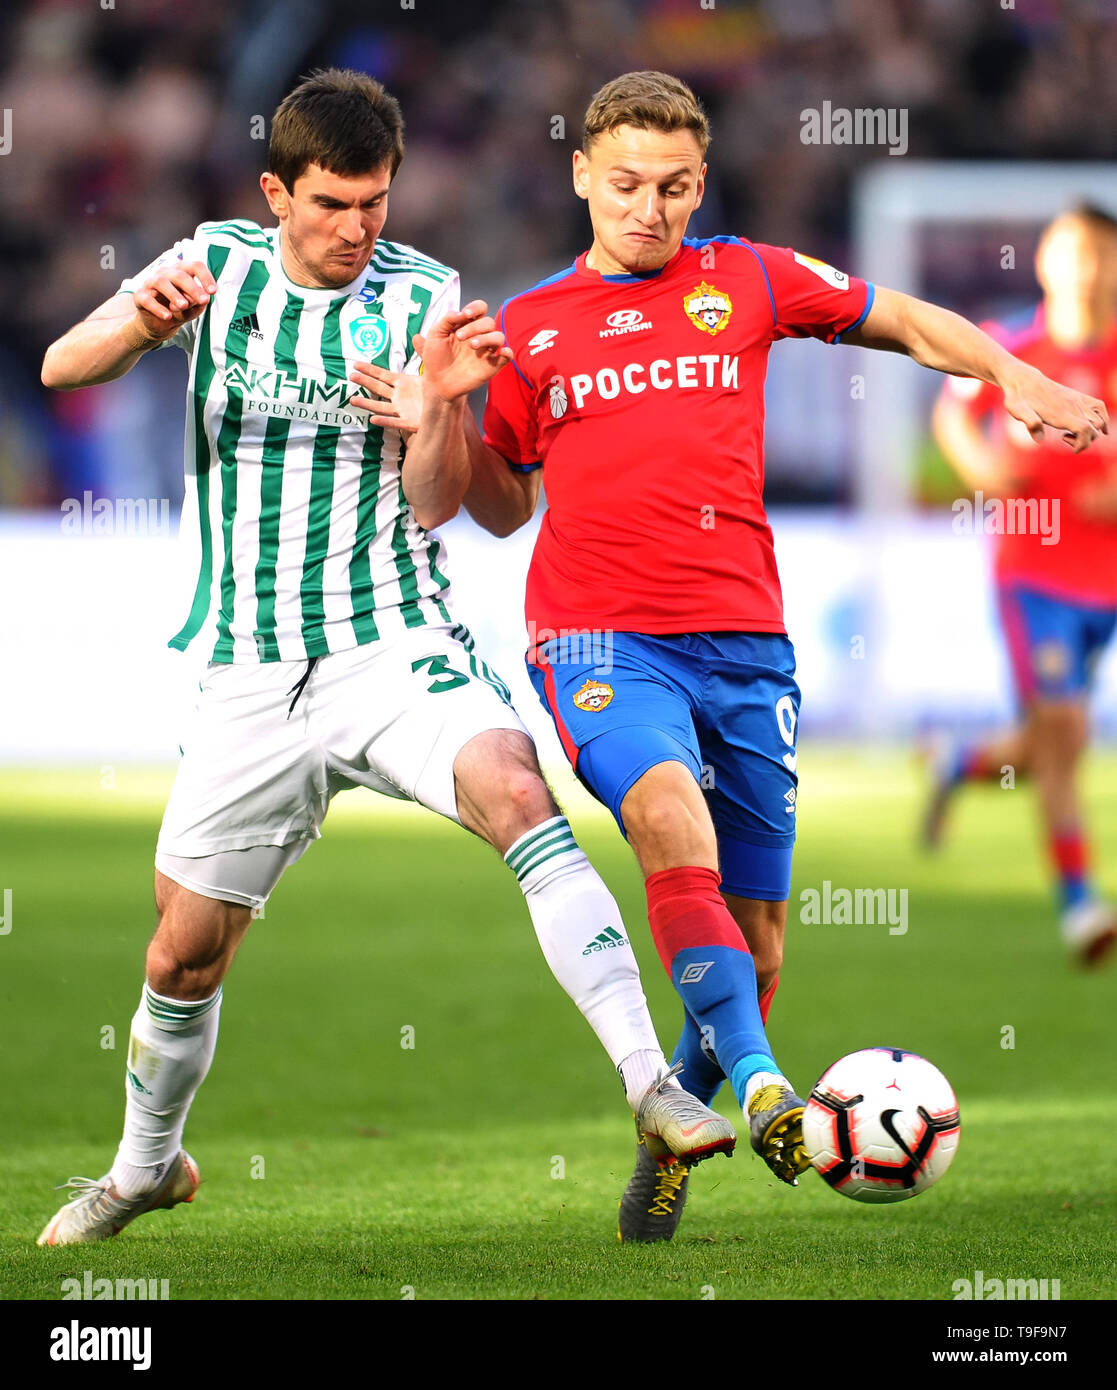 Moscow, Russia. 18th May, 2019. MOSCOW, RUSSIA - MAY 18: Fyodor Chalov of PFC CSKA Moscow and Zaurbek Pliyev of FC Akhmat Grozny vie for the ball during the Russian Football League match between PFC CSKA Moscow and FC Akhmat Grozny at Arena CSKA stadium on May 18, 2019 in Moscow, Russia. (Photo by Epsilon/Getty Images) Credit: ITAR-TASS News Agency/Alamy Live News - Stock Image